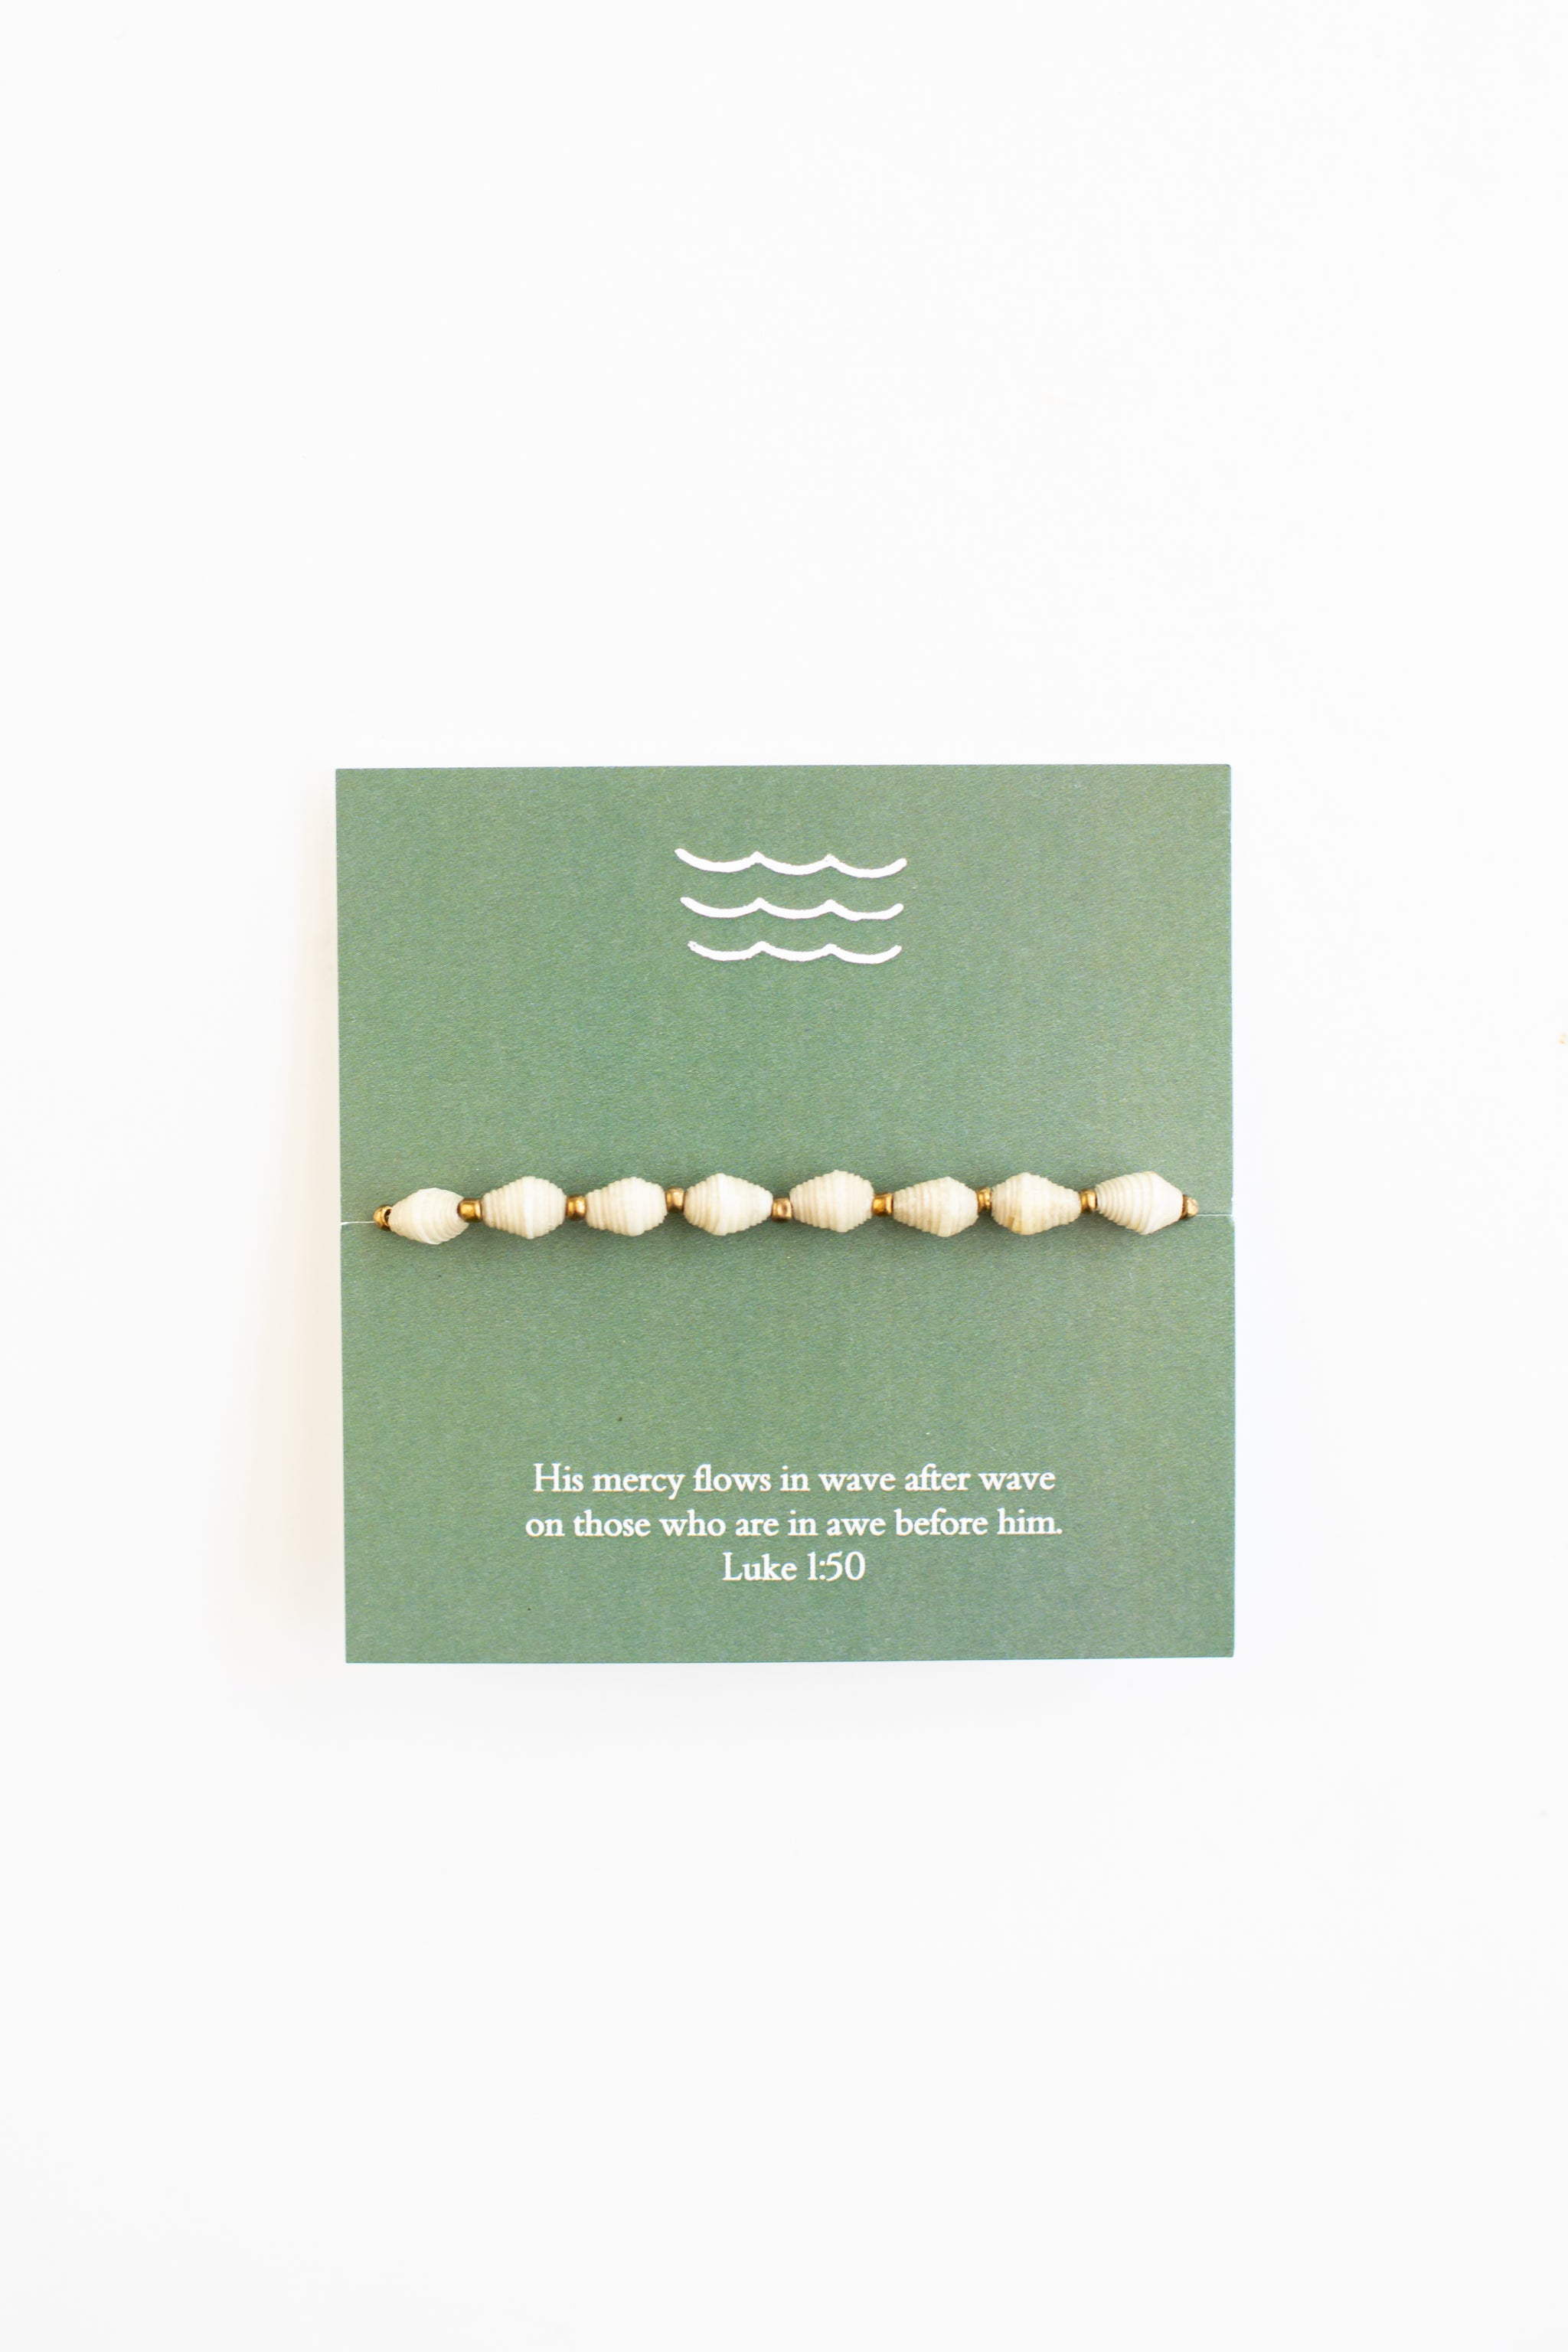 Paper Bead Bracelet & Waves Card - Luke 1:50 Bracelet - Fair Trade - Mercy House Global